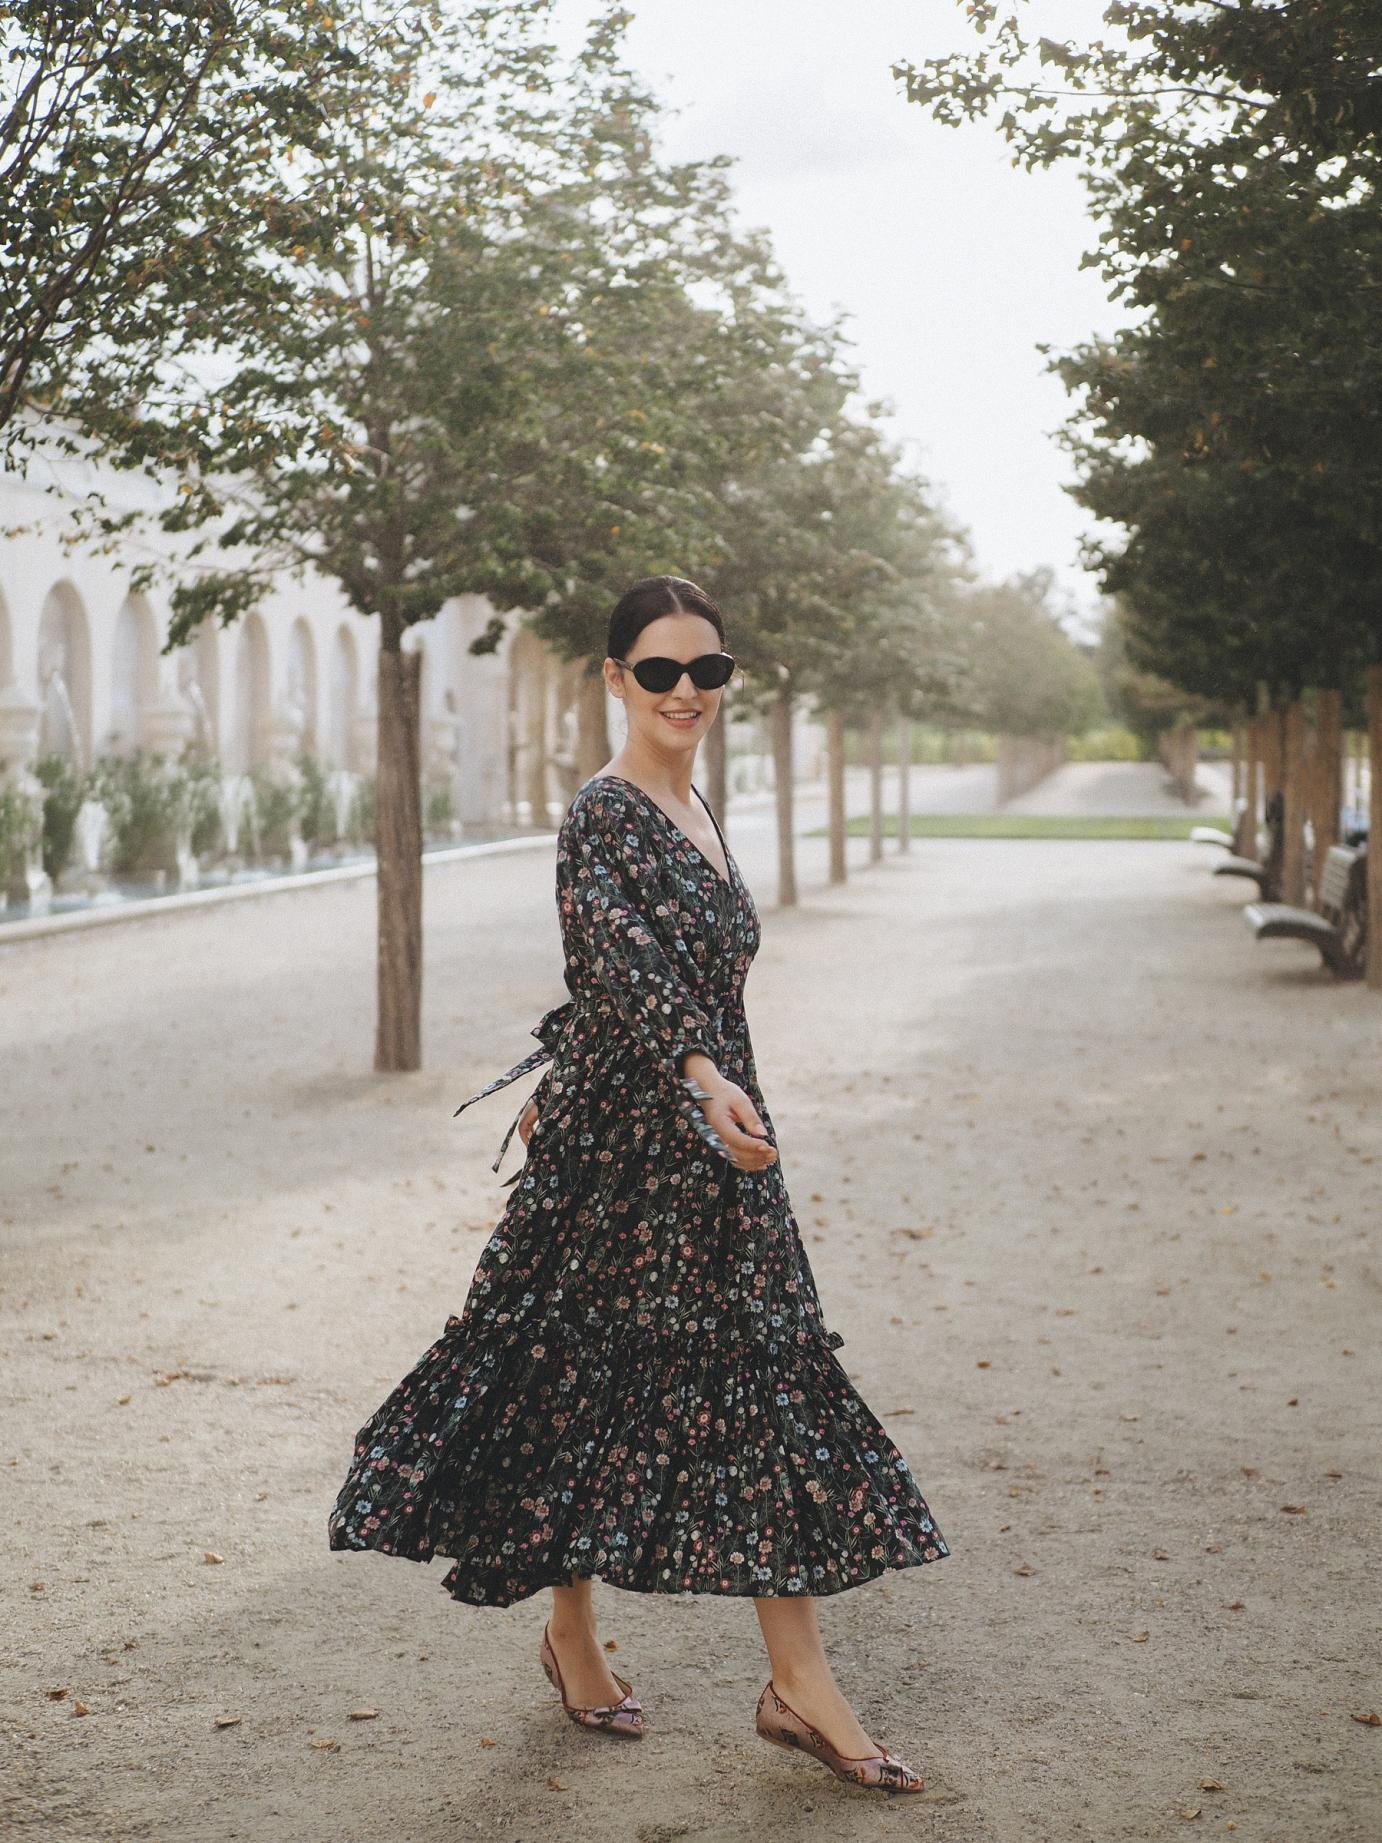 Dark florals for Fall